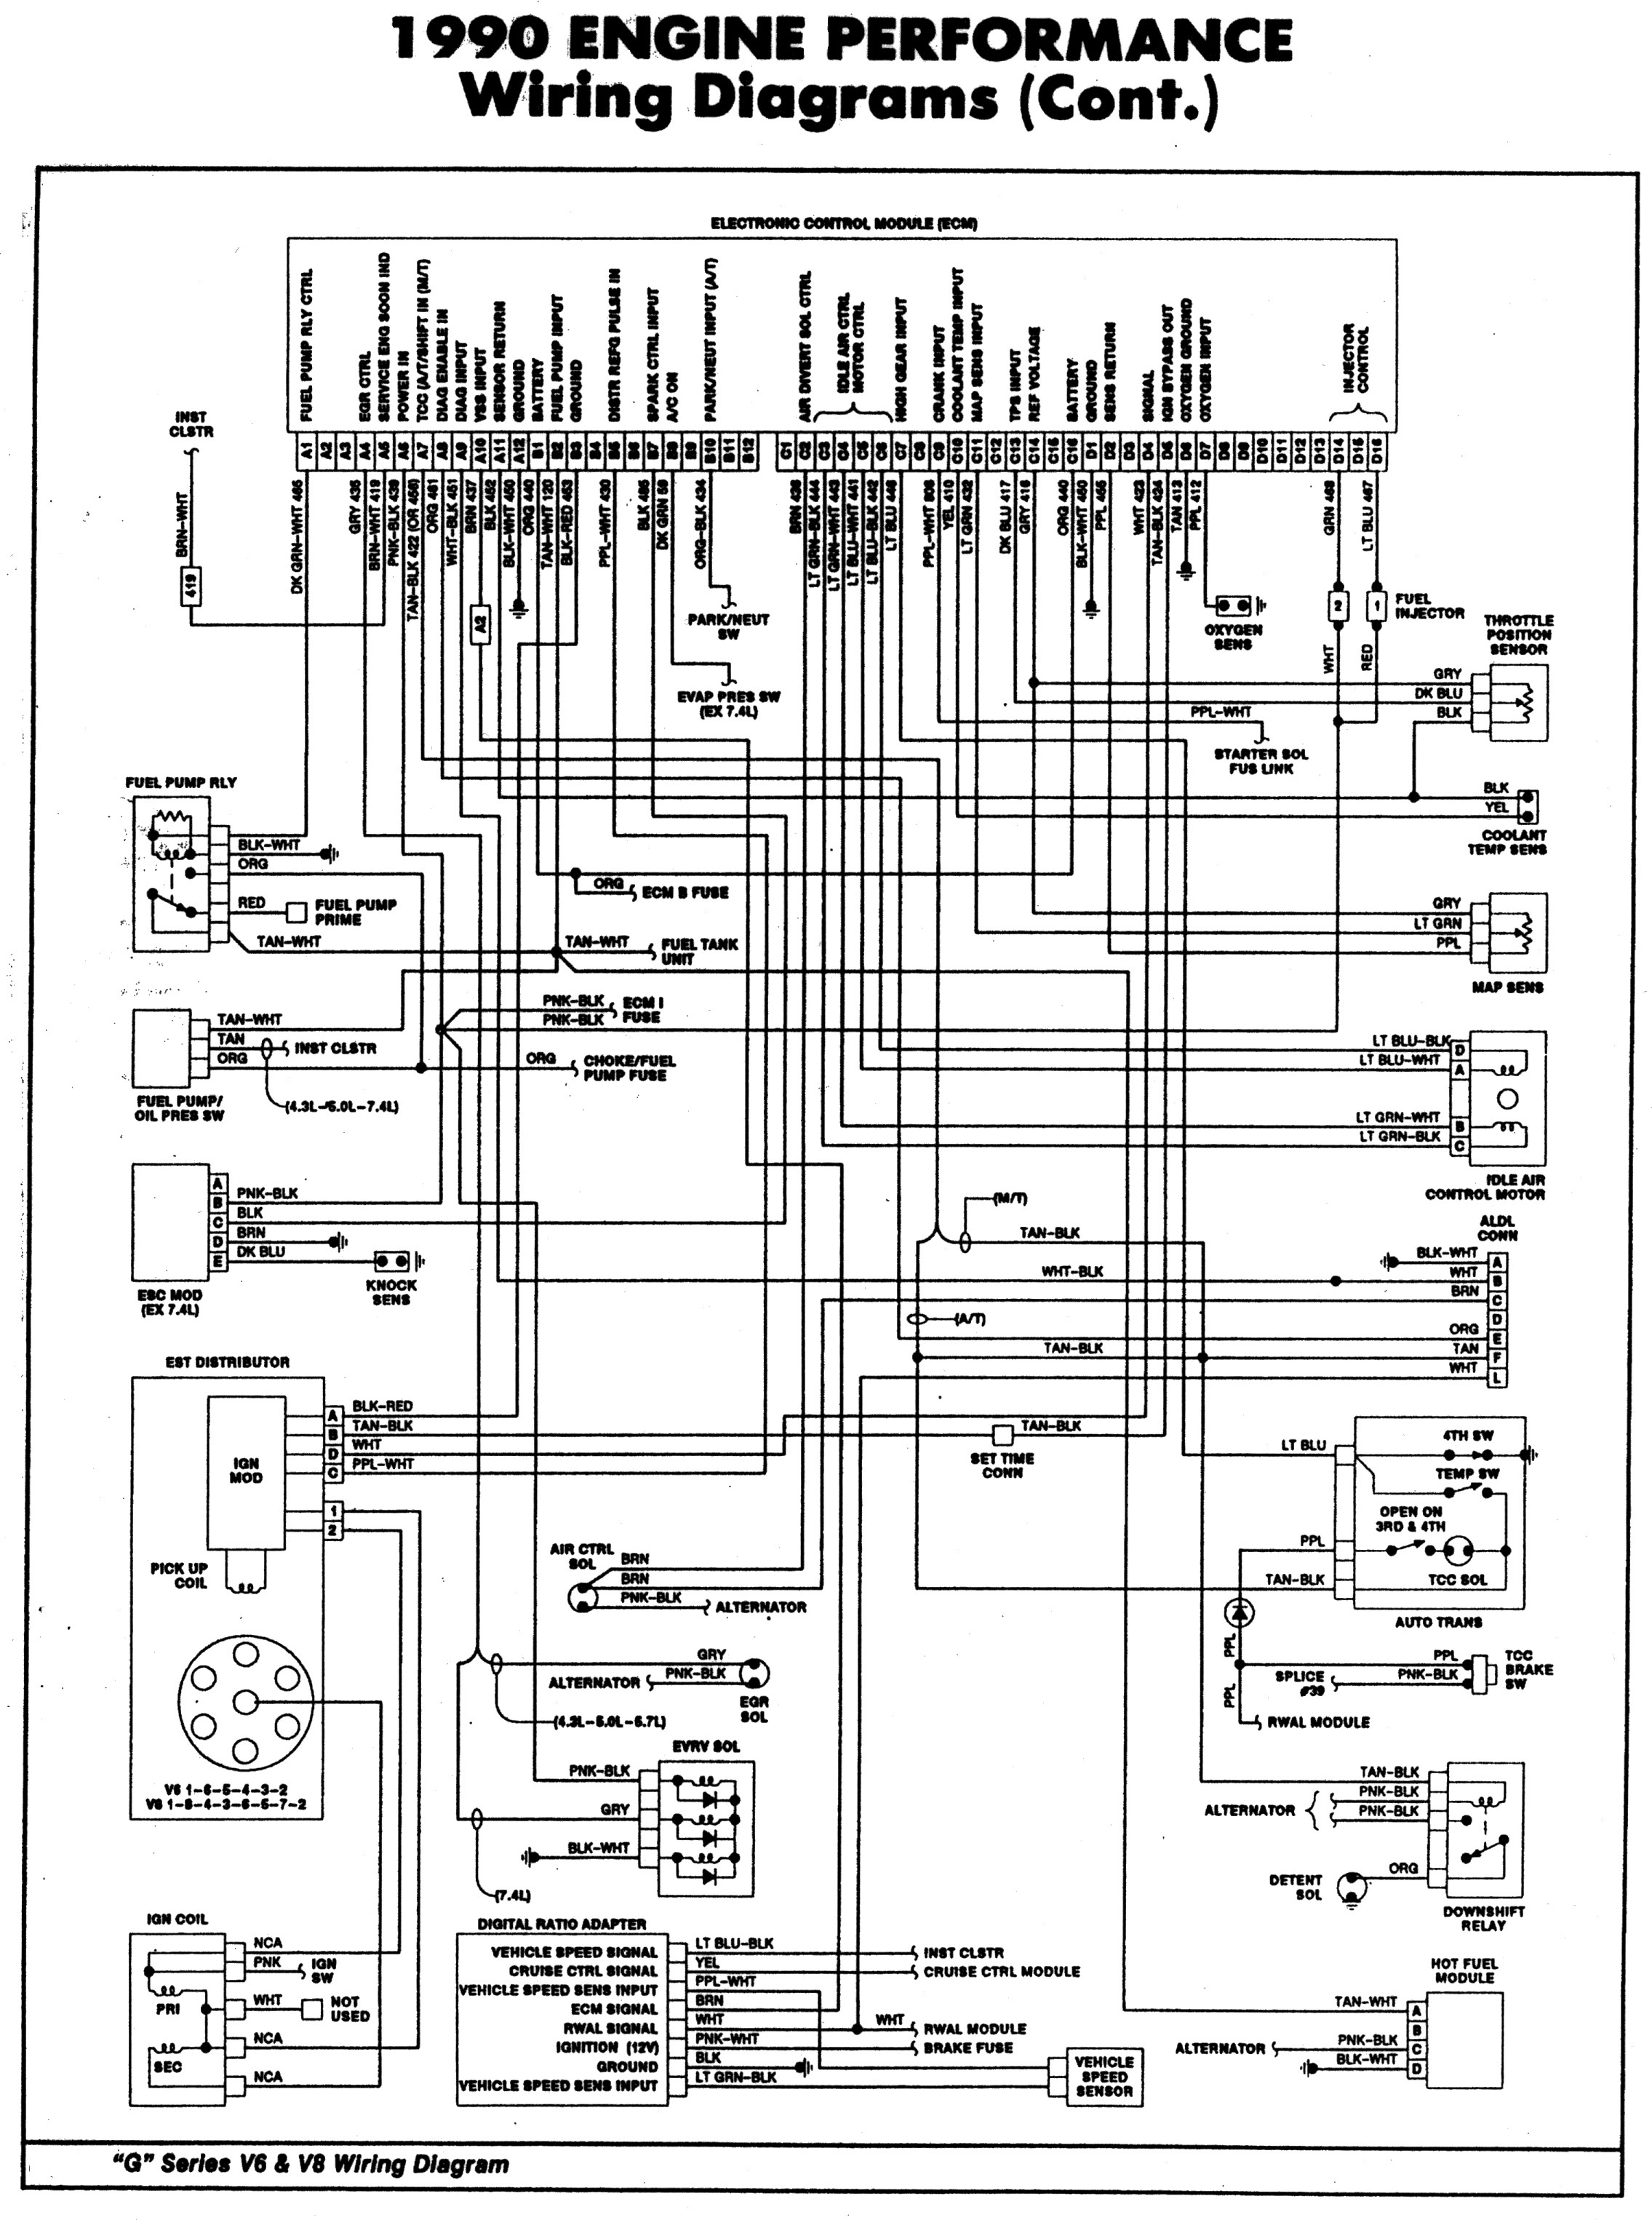 medium resolution of 91 lumina wiring diagram wiring diagram yer 91 chevy suburban wiring diagram 91 lumina wiring diagram